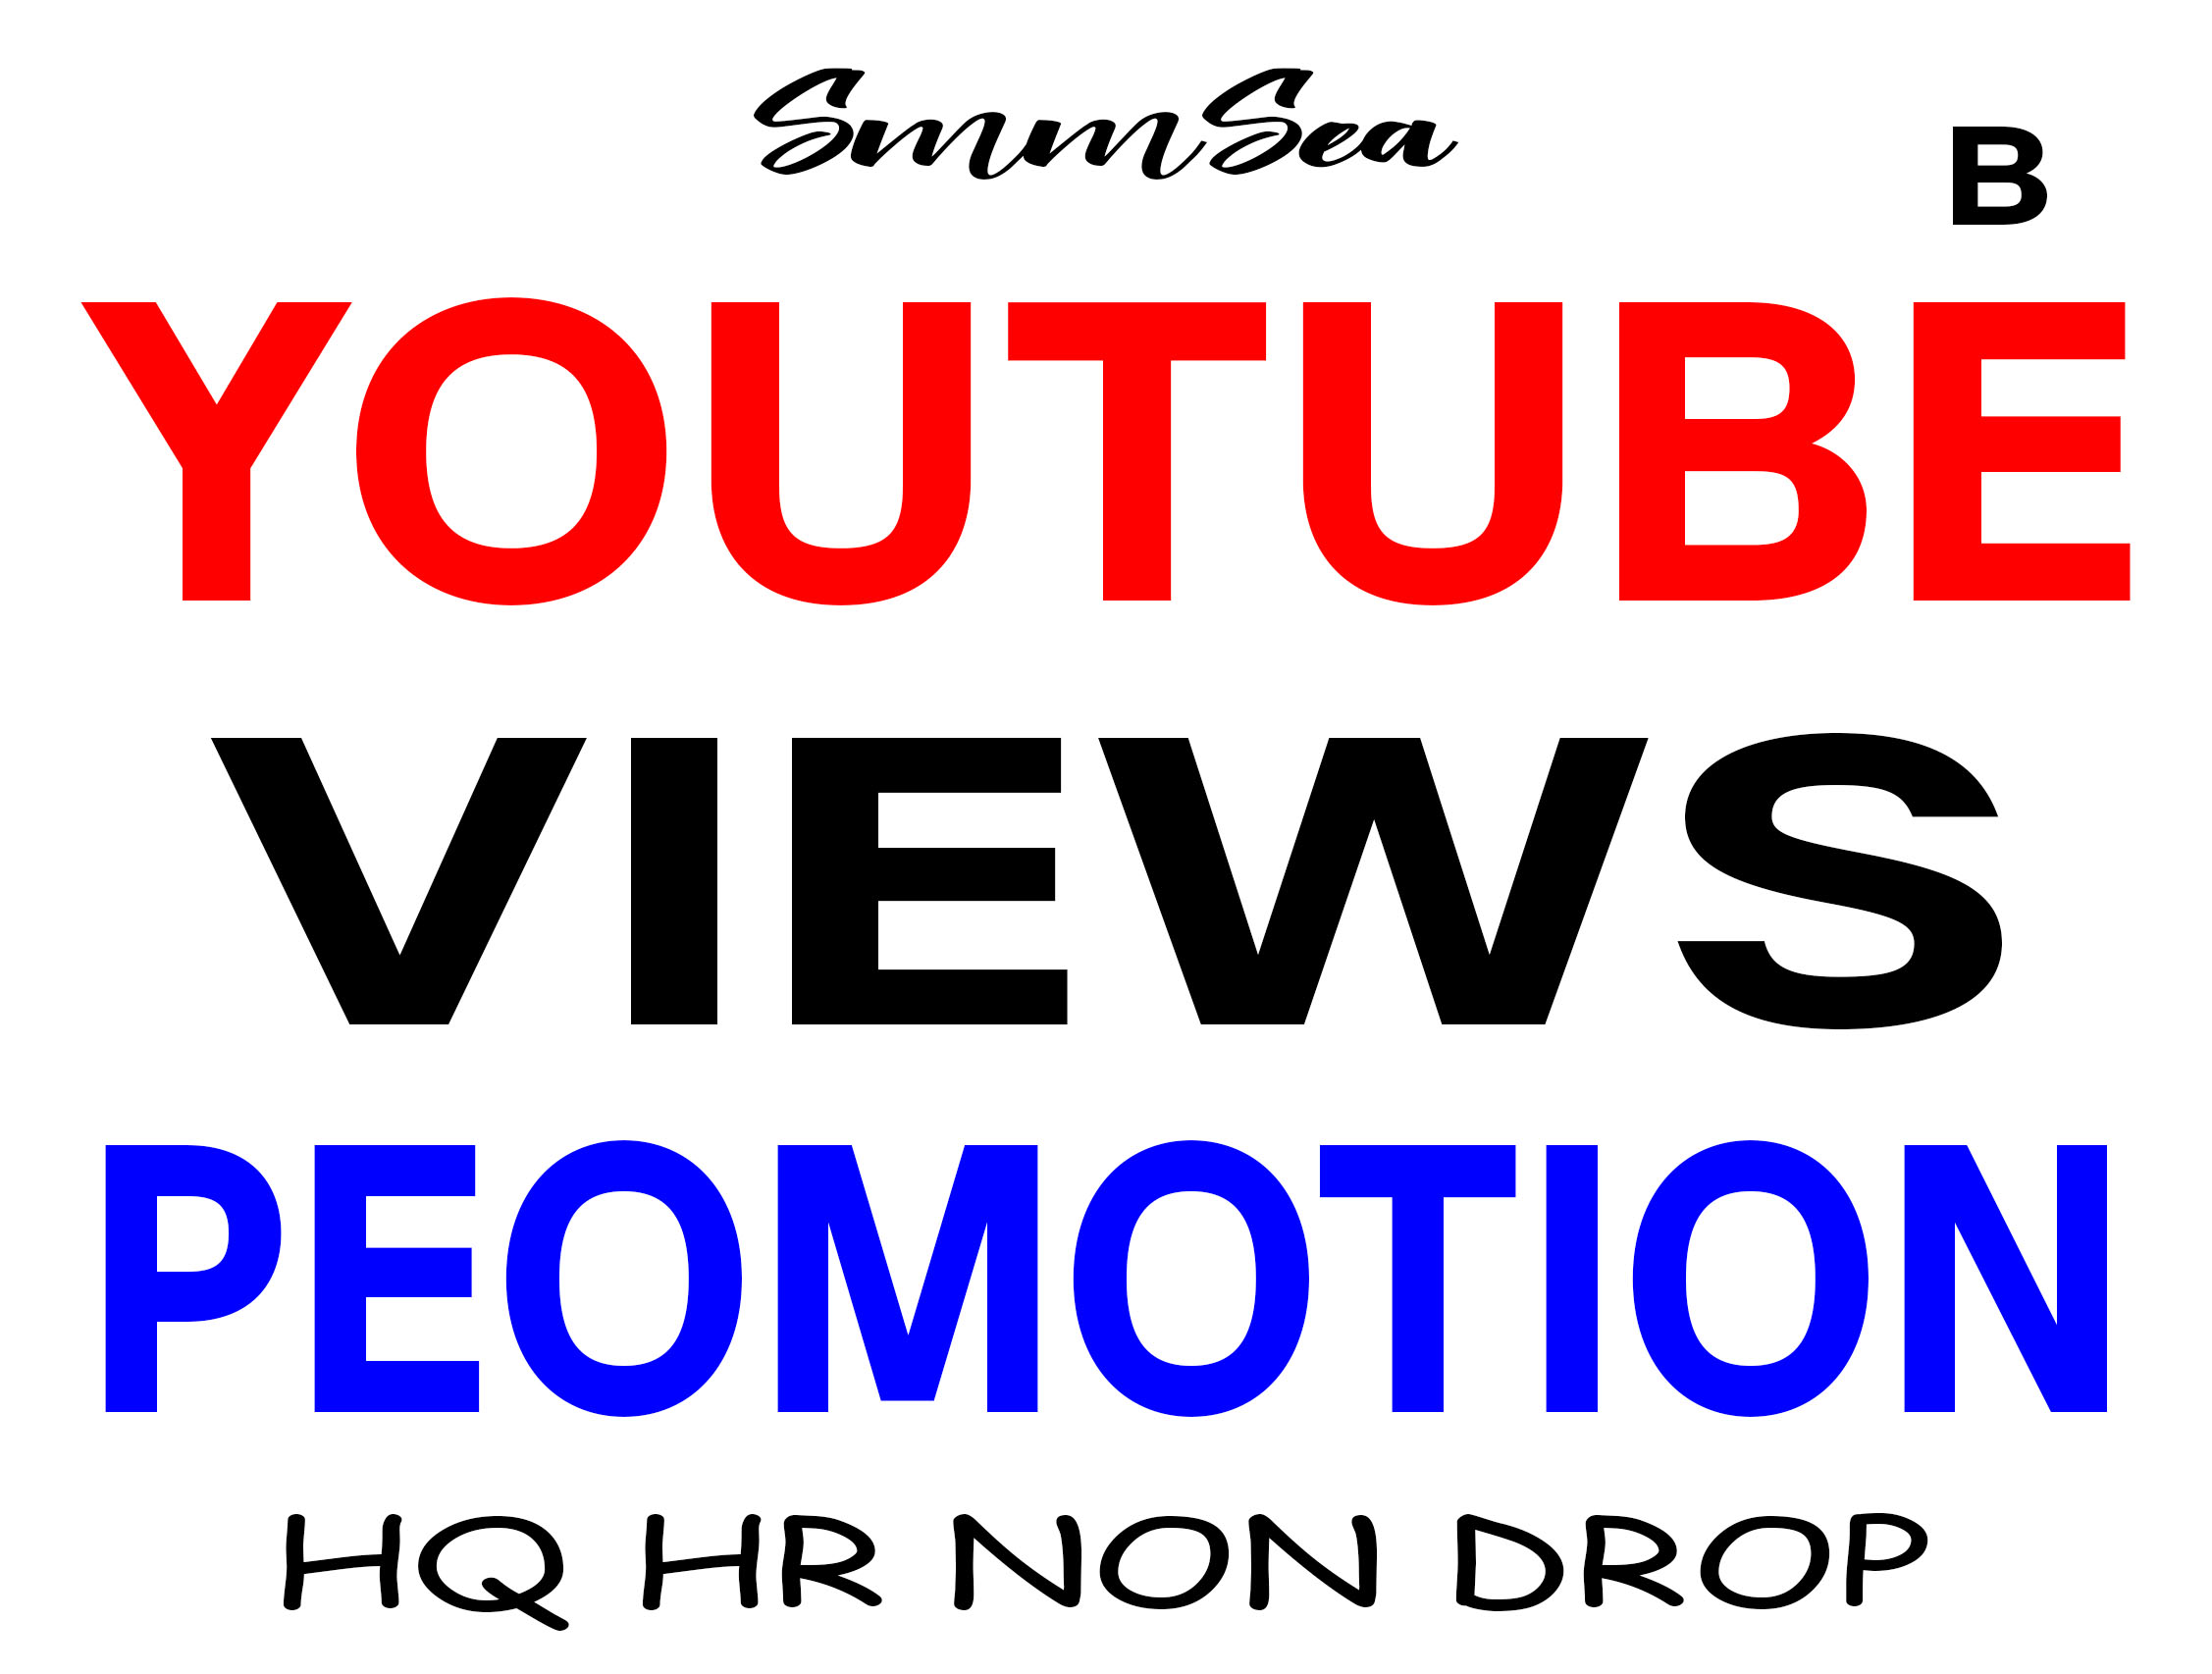 HIGH QUALITY & NON DROP YOUTUBE VIDEO PROMOTION WITHIN 24 HOURS